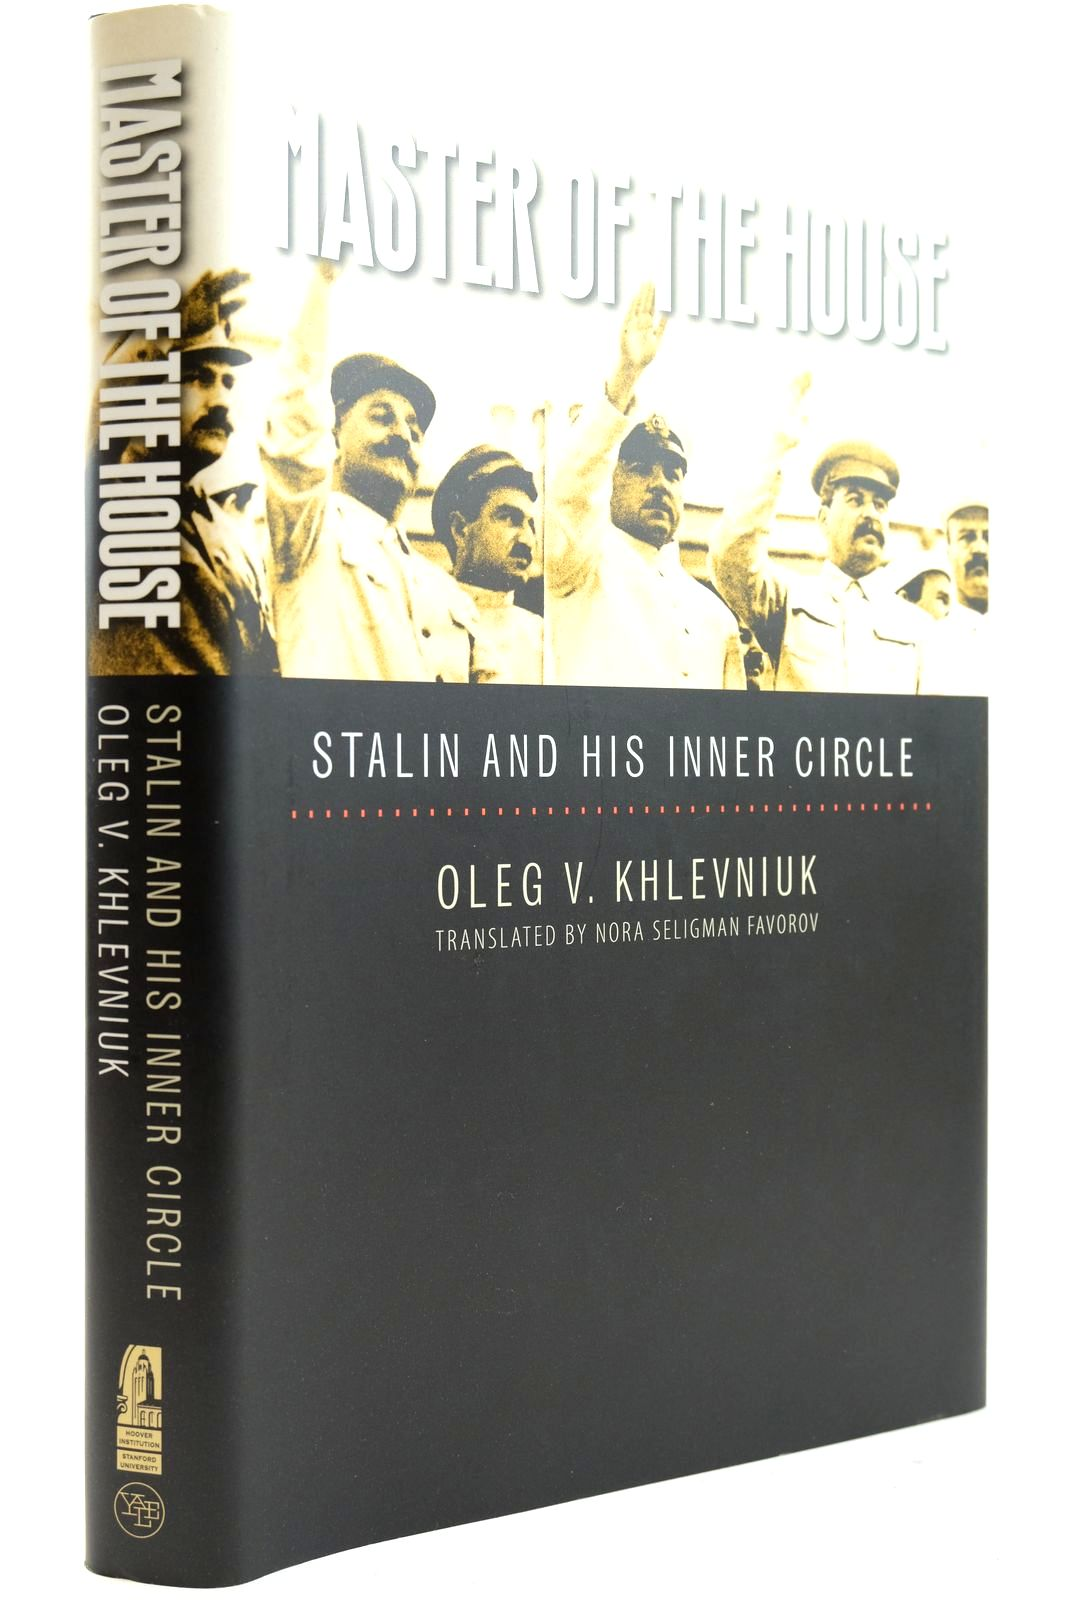 Photo of MASTER OF THE HOUSE STALIN AND HIS INNER CIRCLE- Stock Number: 2132644